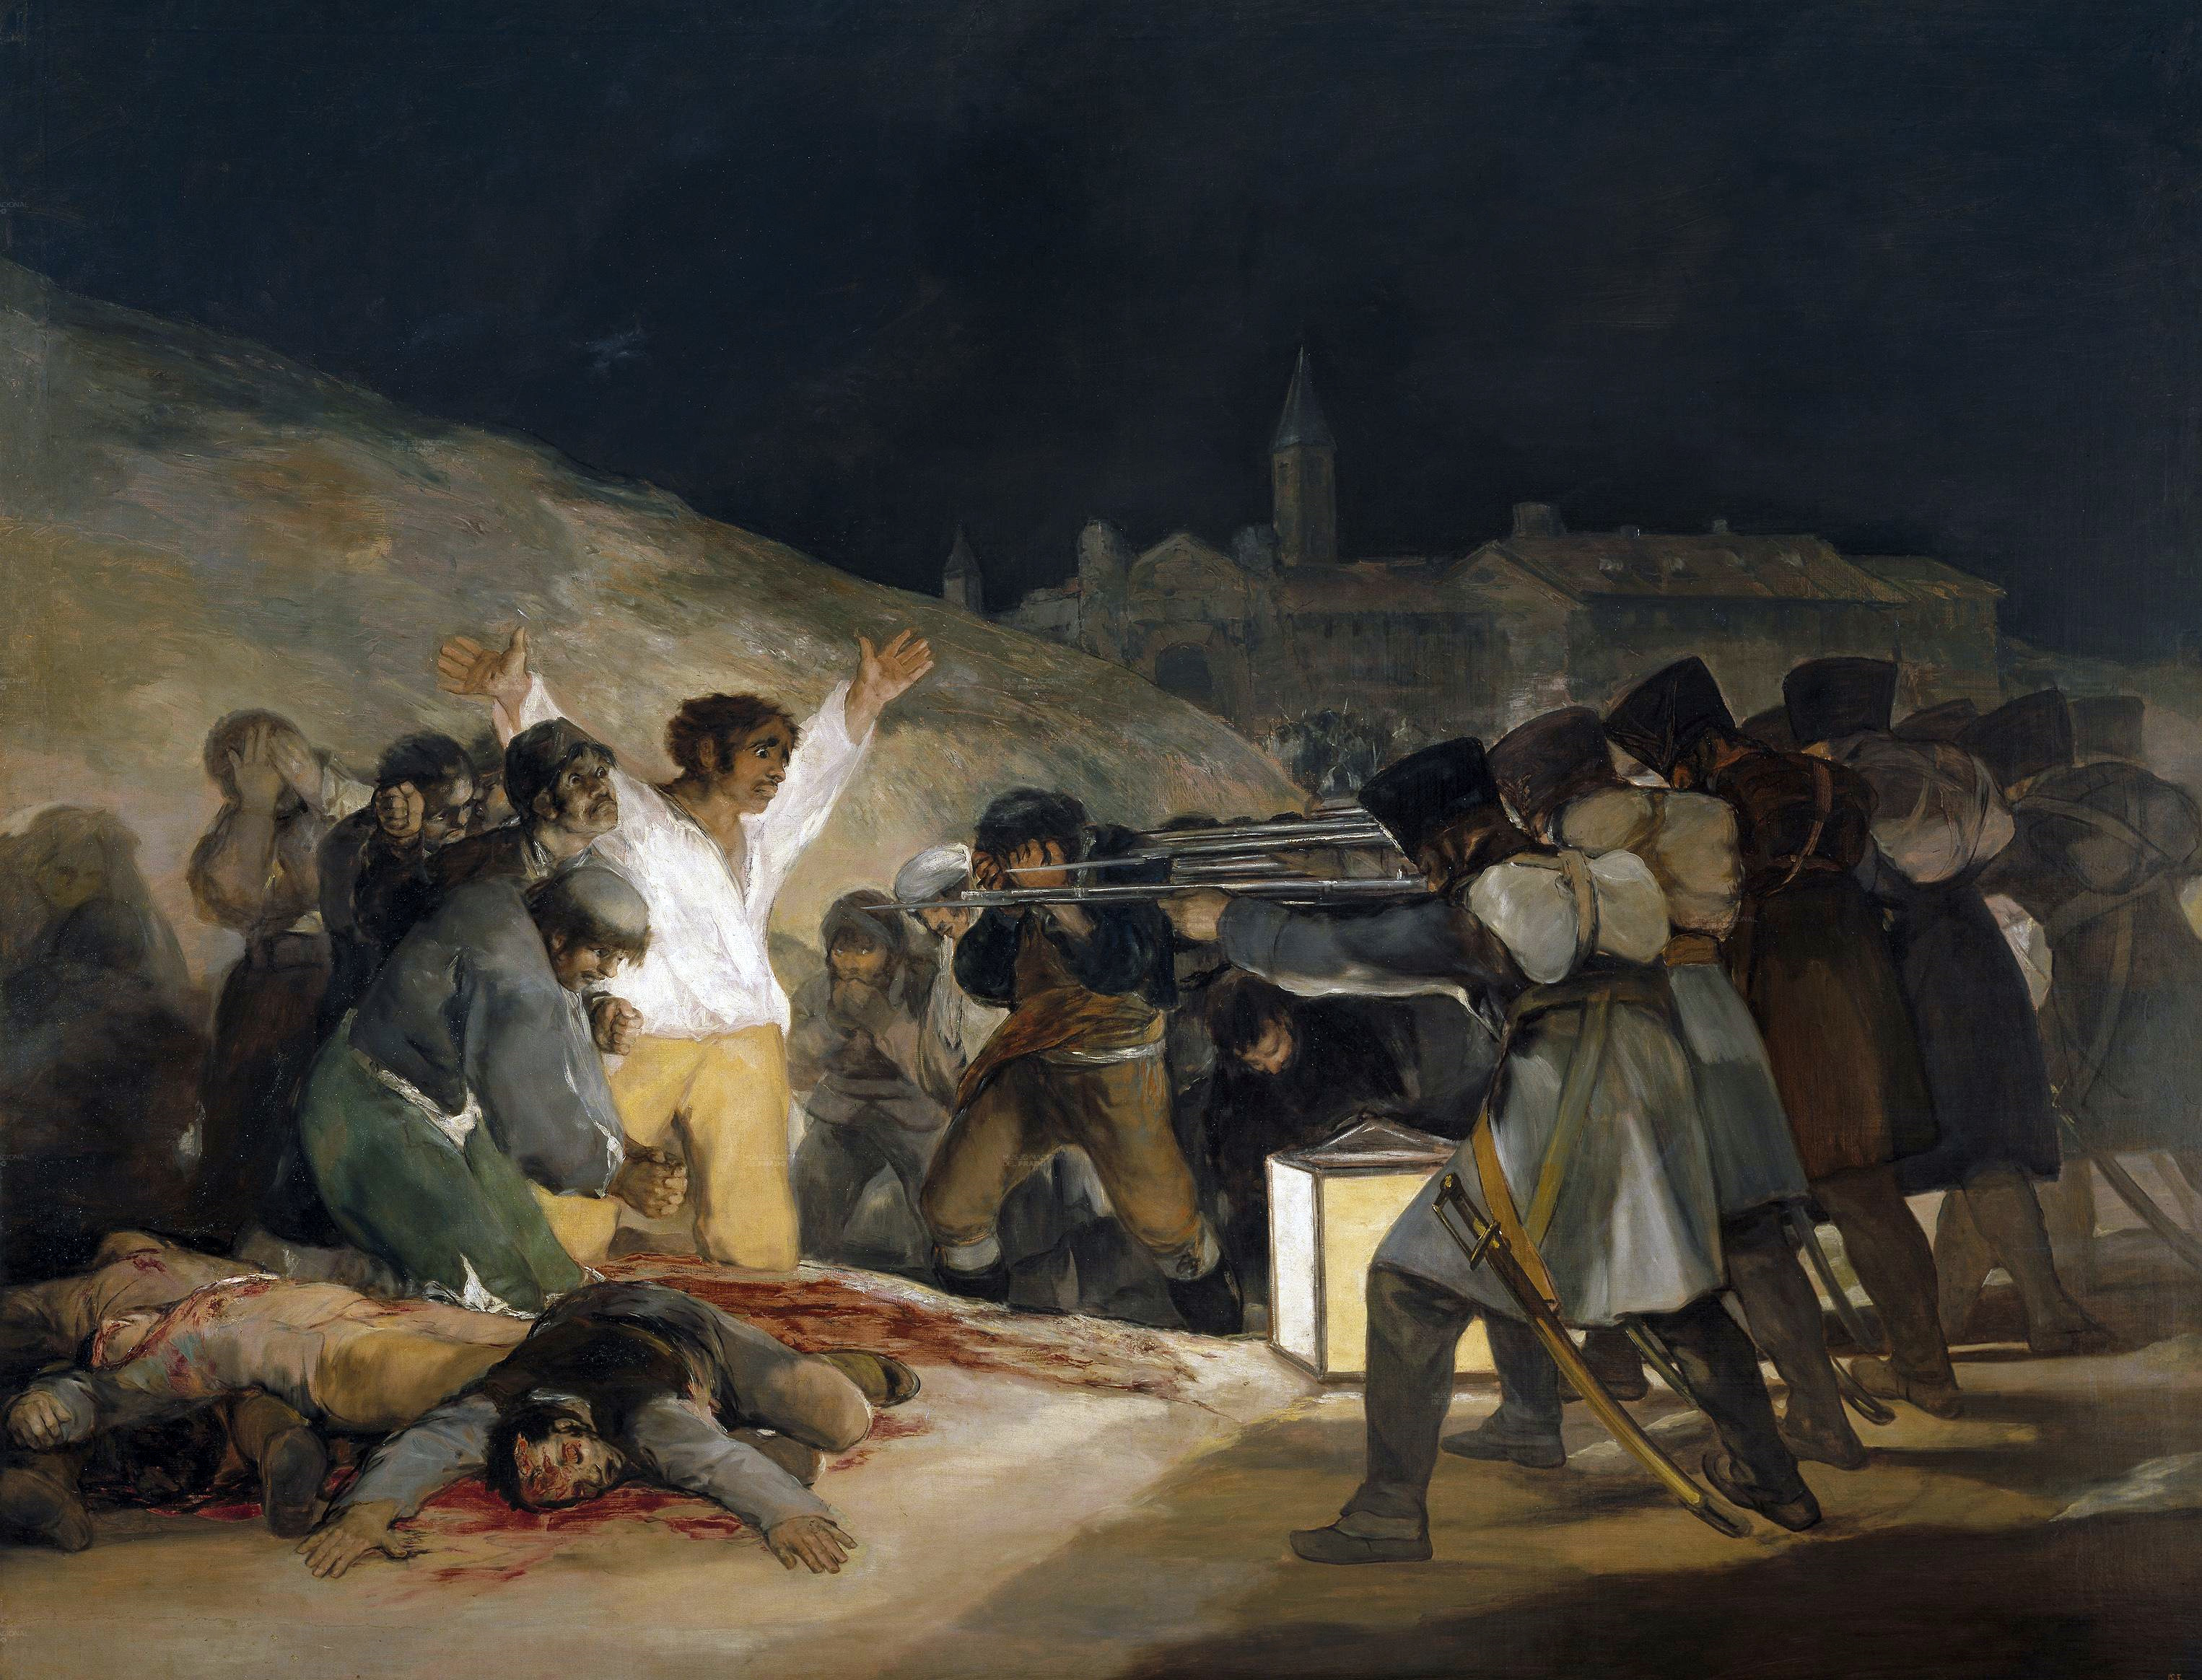 The Third of May 1808 by Francisco Goya, showing Spanish resisters being executed by Napoleon's troops.